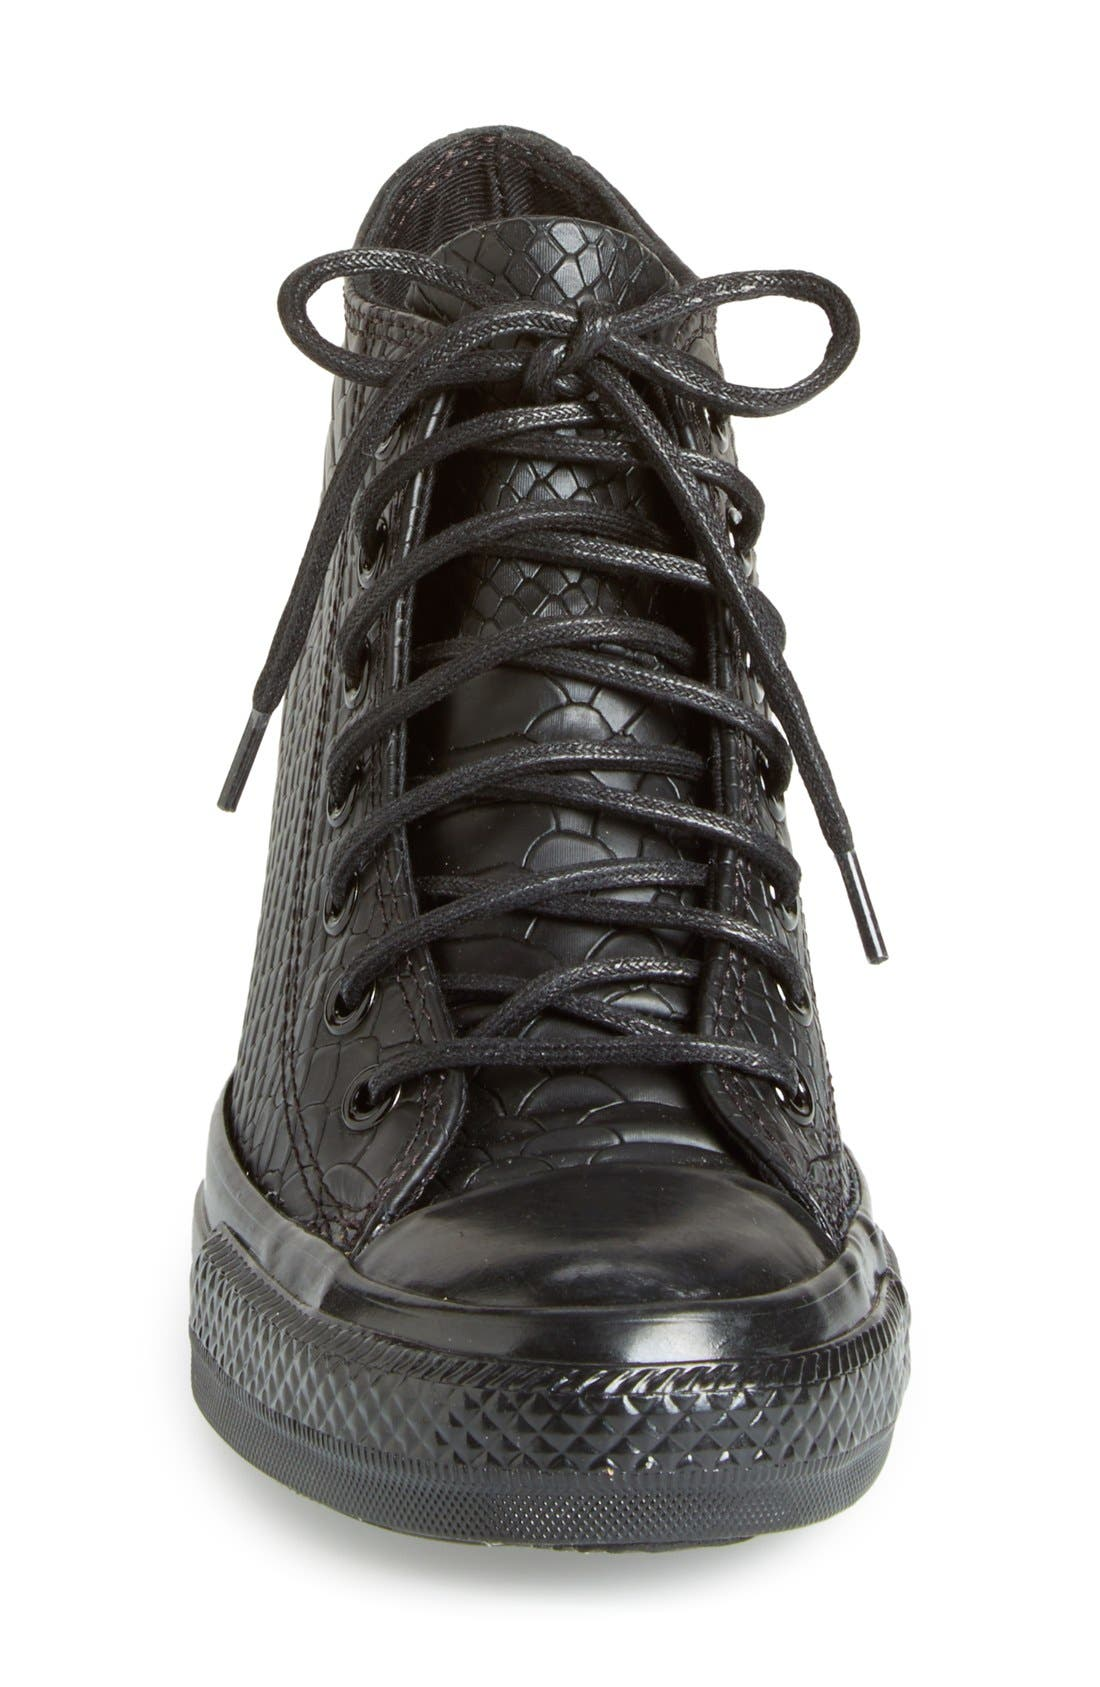 Chuck Taylor<sup>®</sup> All Star<sup>®</sup> 'Embossed Reptile' Wedge Sneaker,                             Alternate thumbnail 2, color,                             001